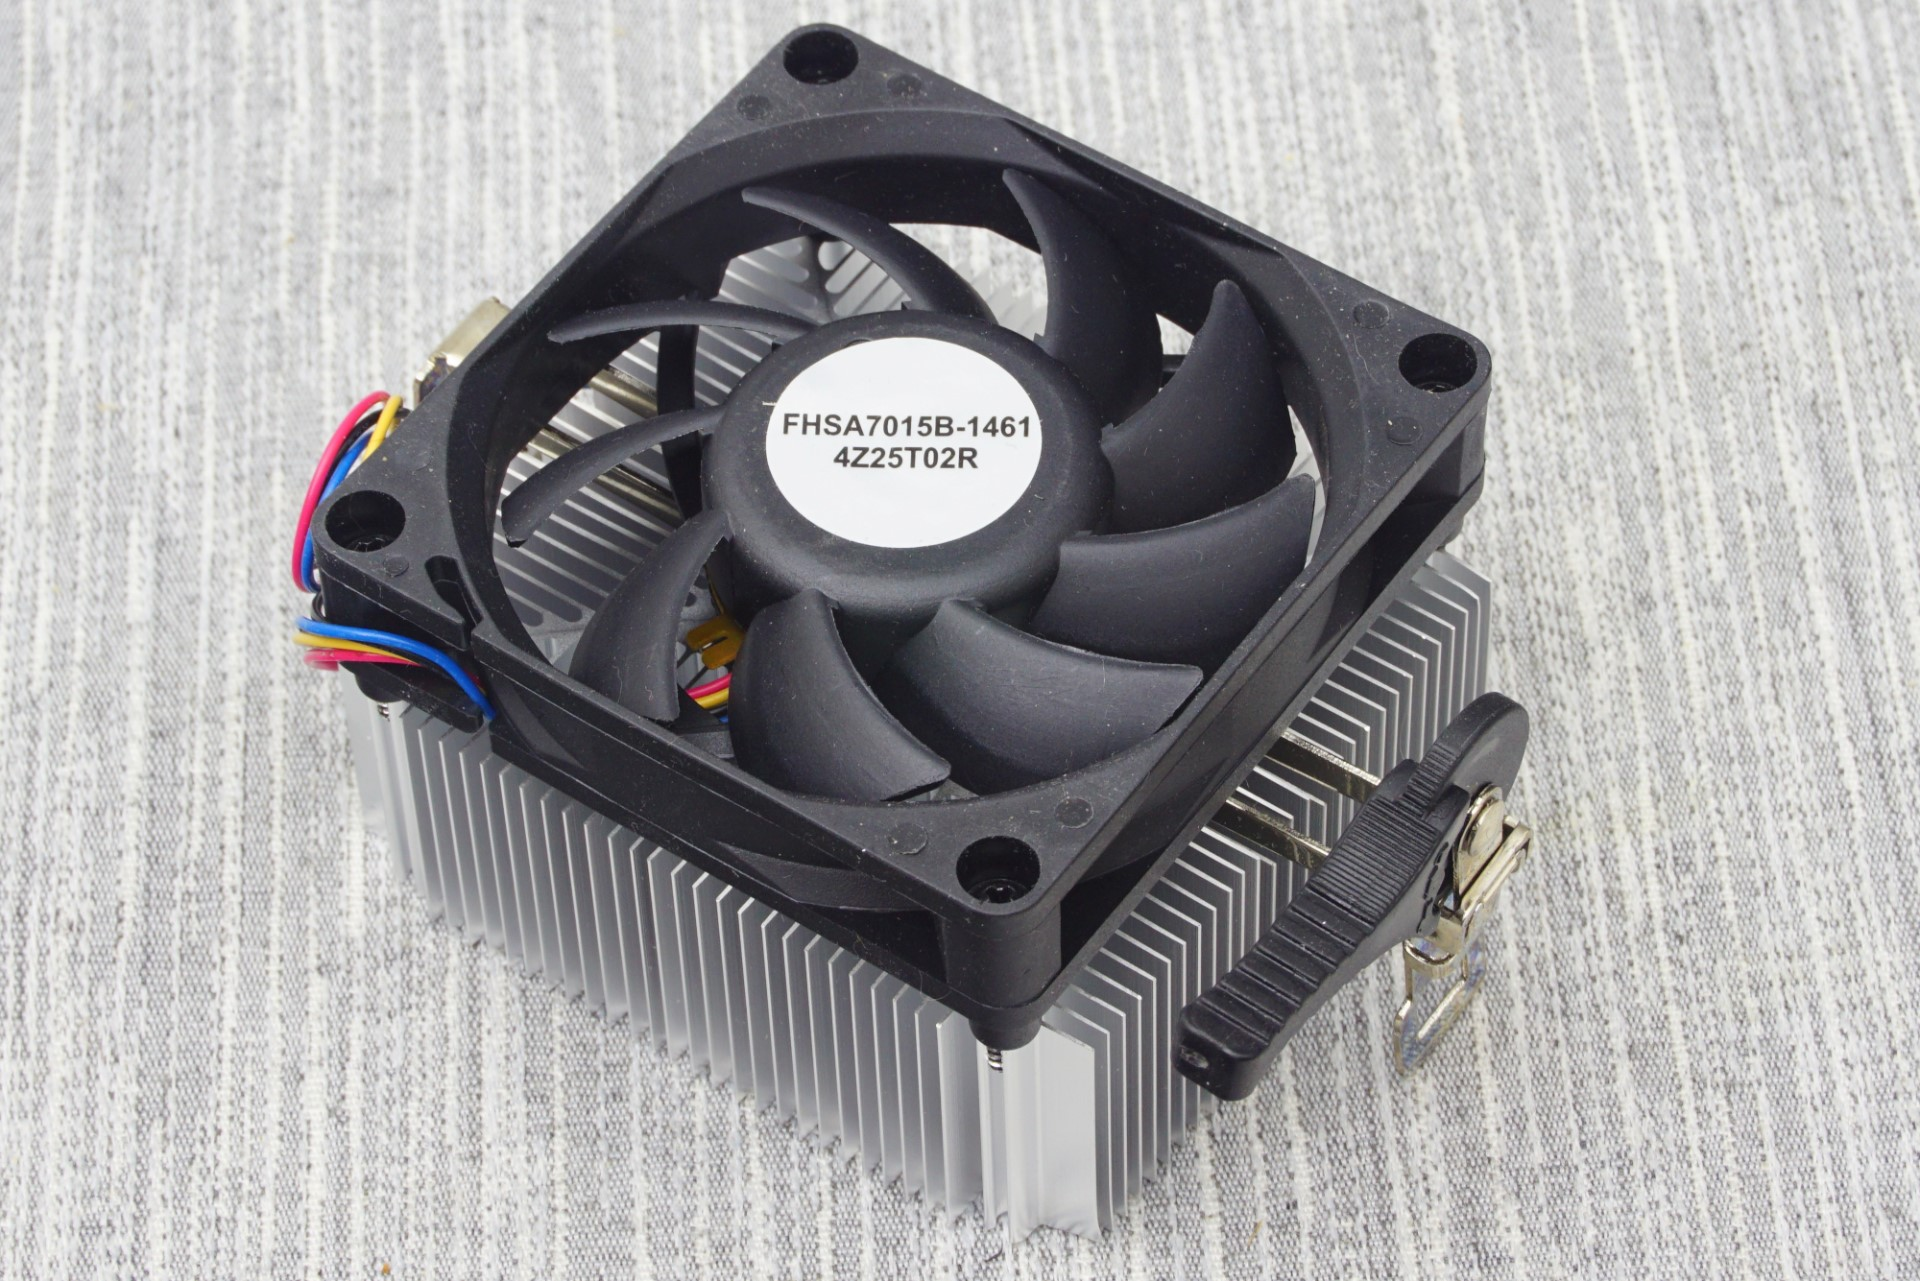 The Amd Coolers Battle Of The Cpu Stock Coolers 7x Intel Vs 5x Amd Plus An Evo 212